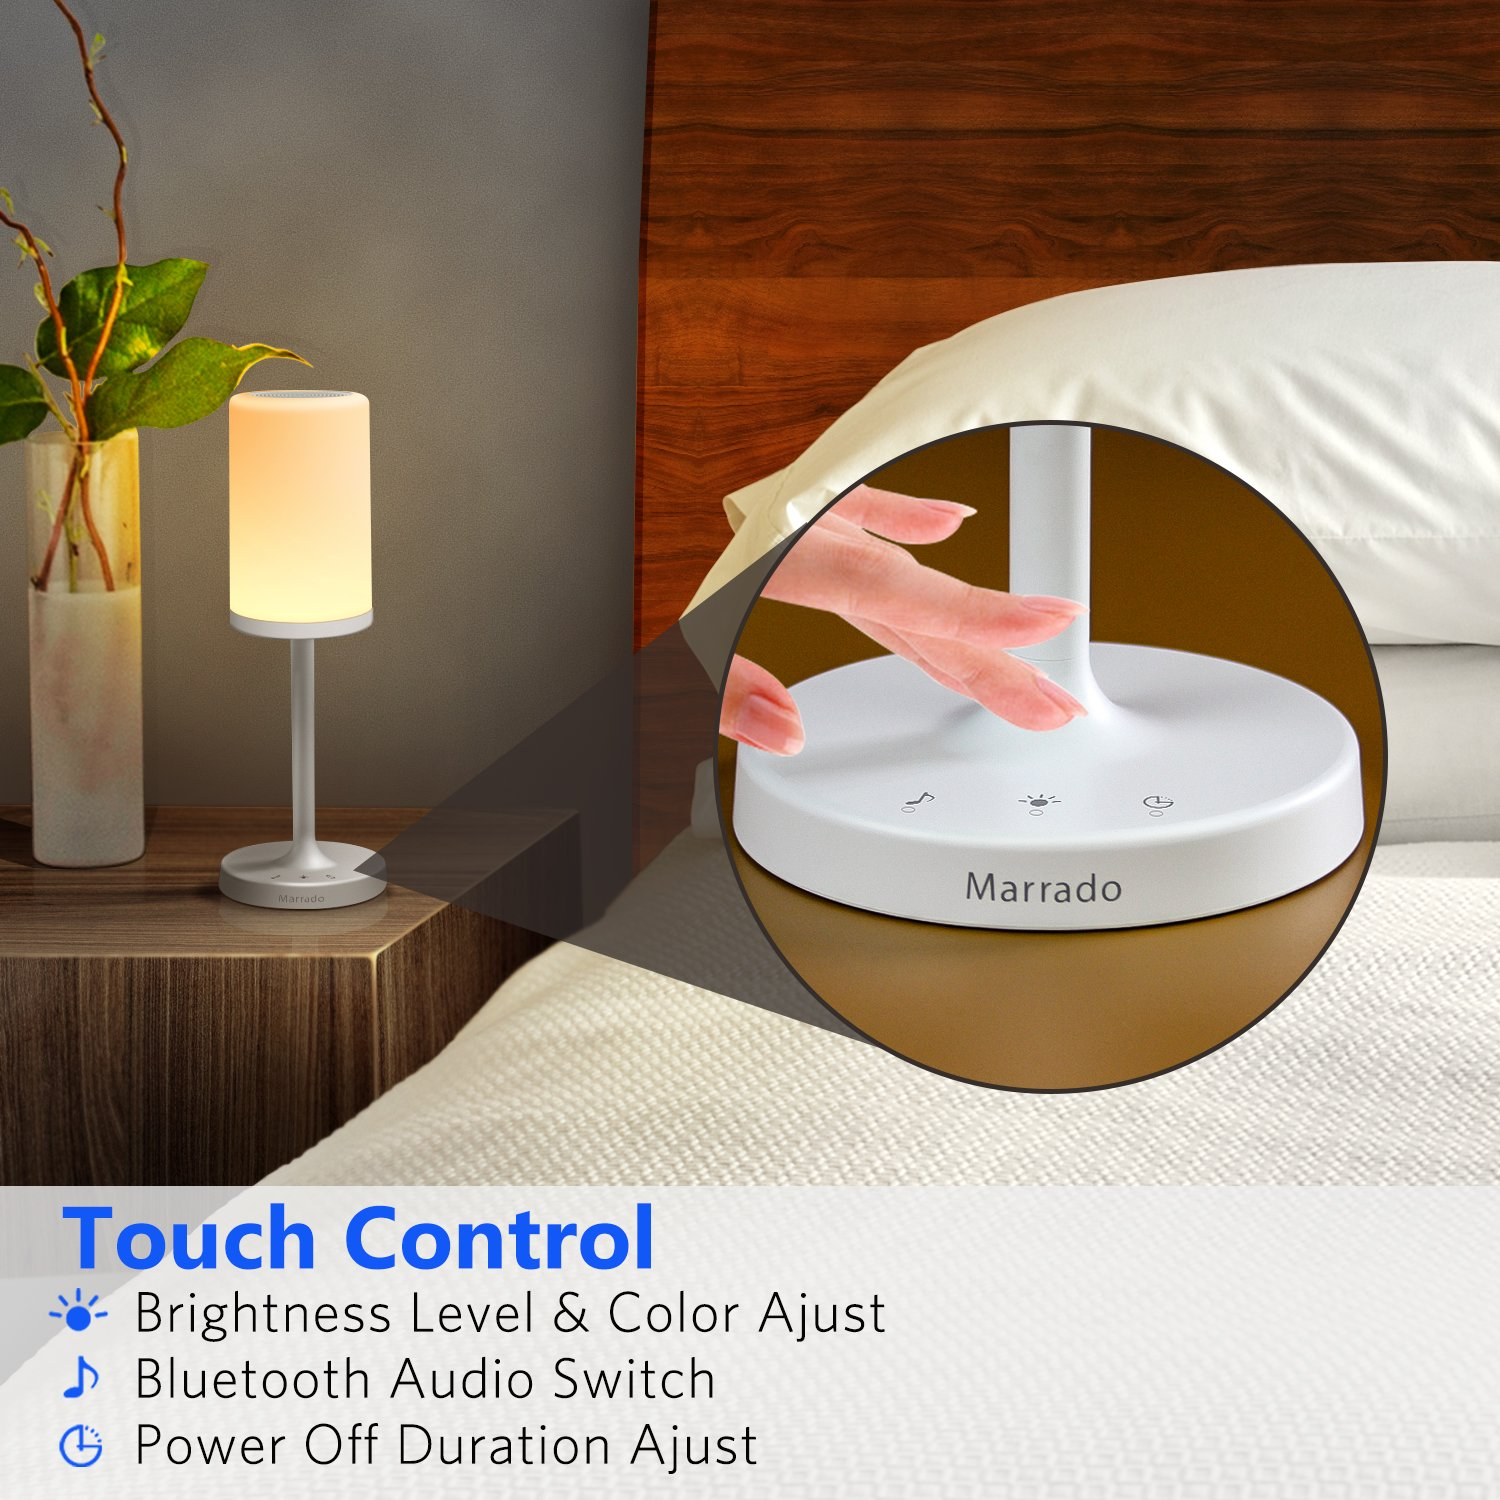 Marrado Bluetooth Speakers + Bedside Lamp, Night Light, Smart Touch Control Table Lamp for Bedroom Living Room, Portable Rechargeable LED Desk Lamp, Dimmable Warm White & Color Changing by Marrado (Image #2)